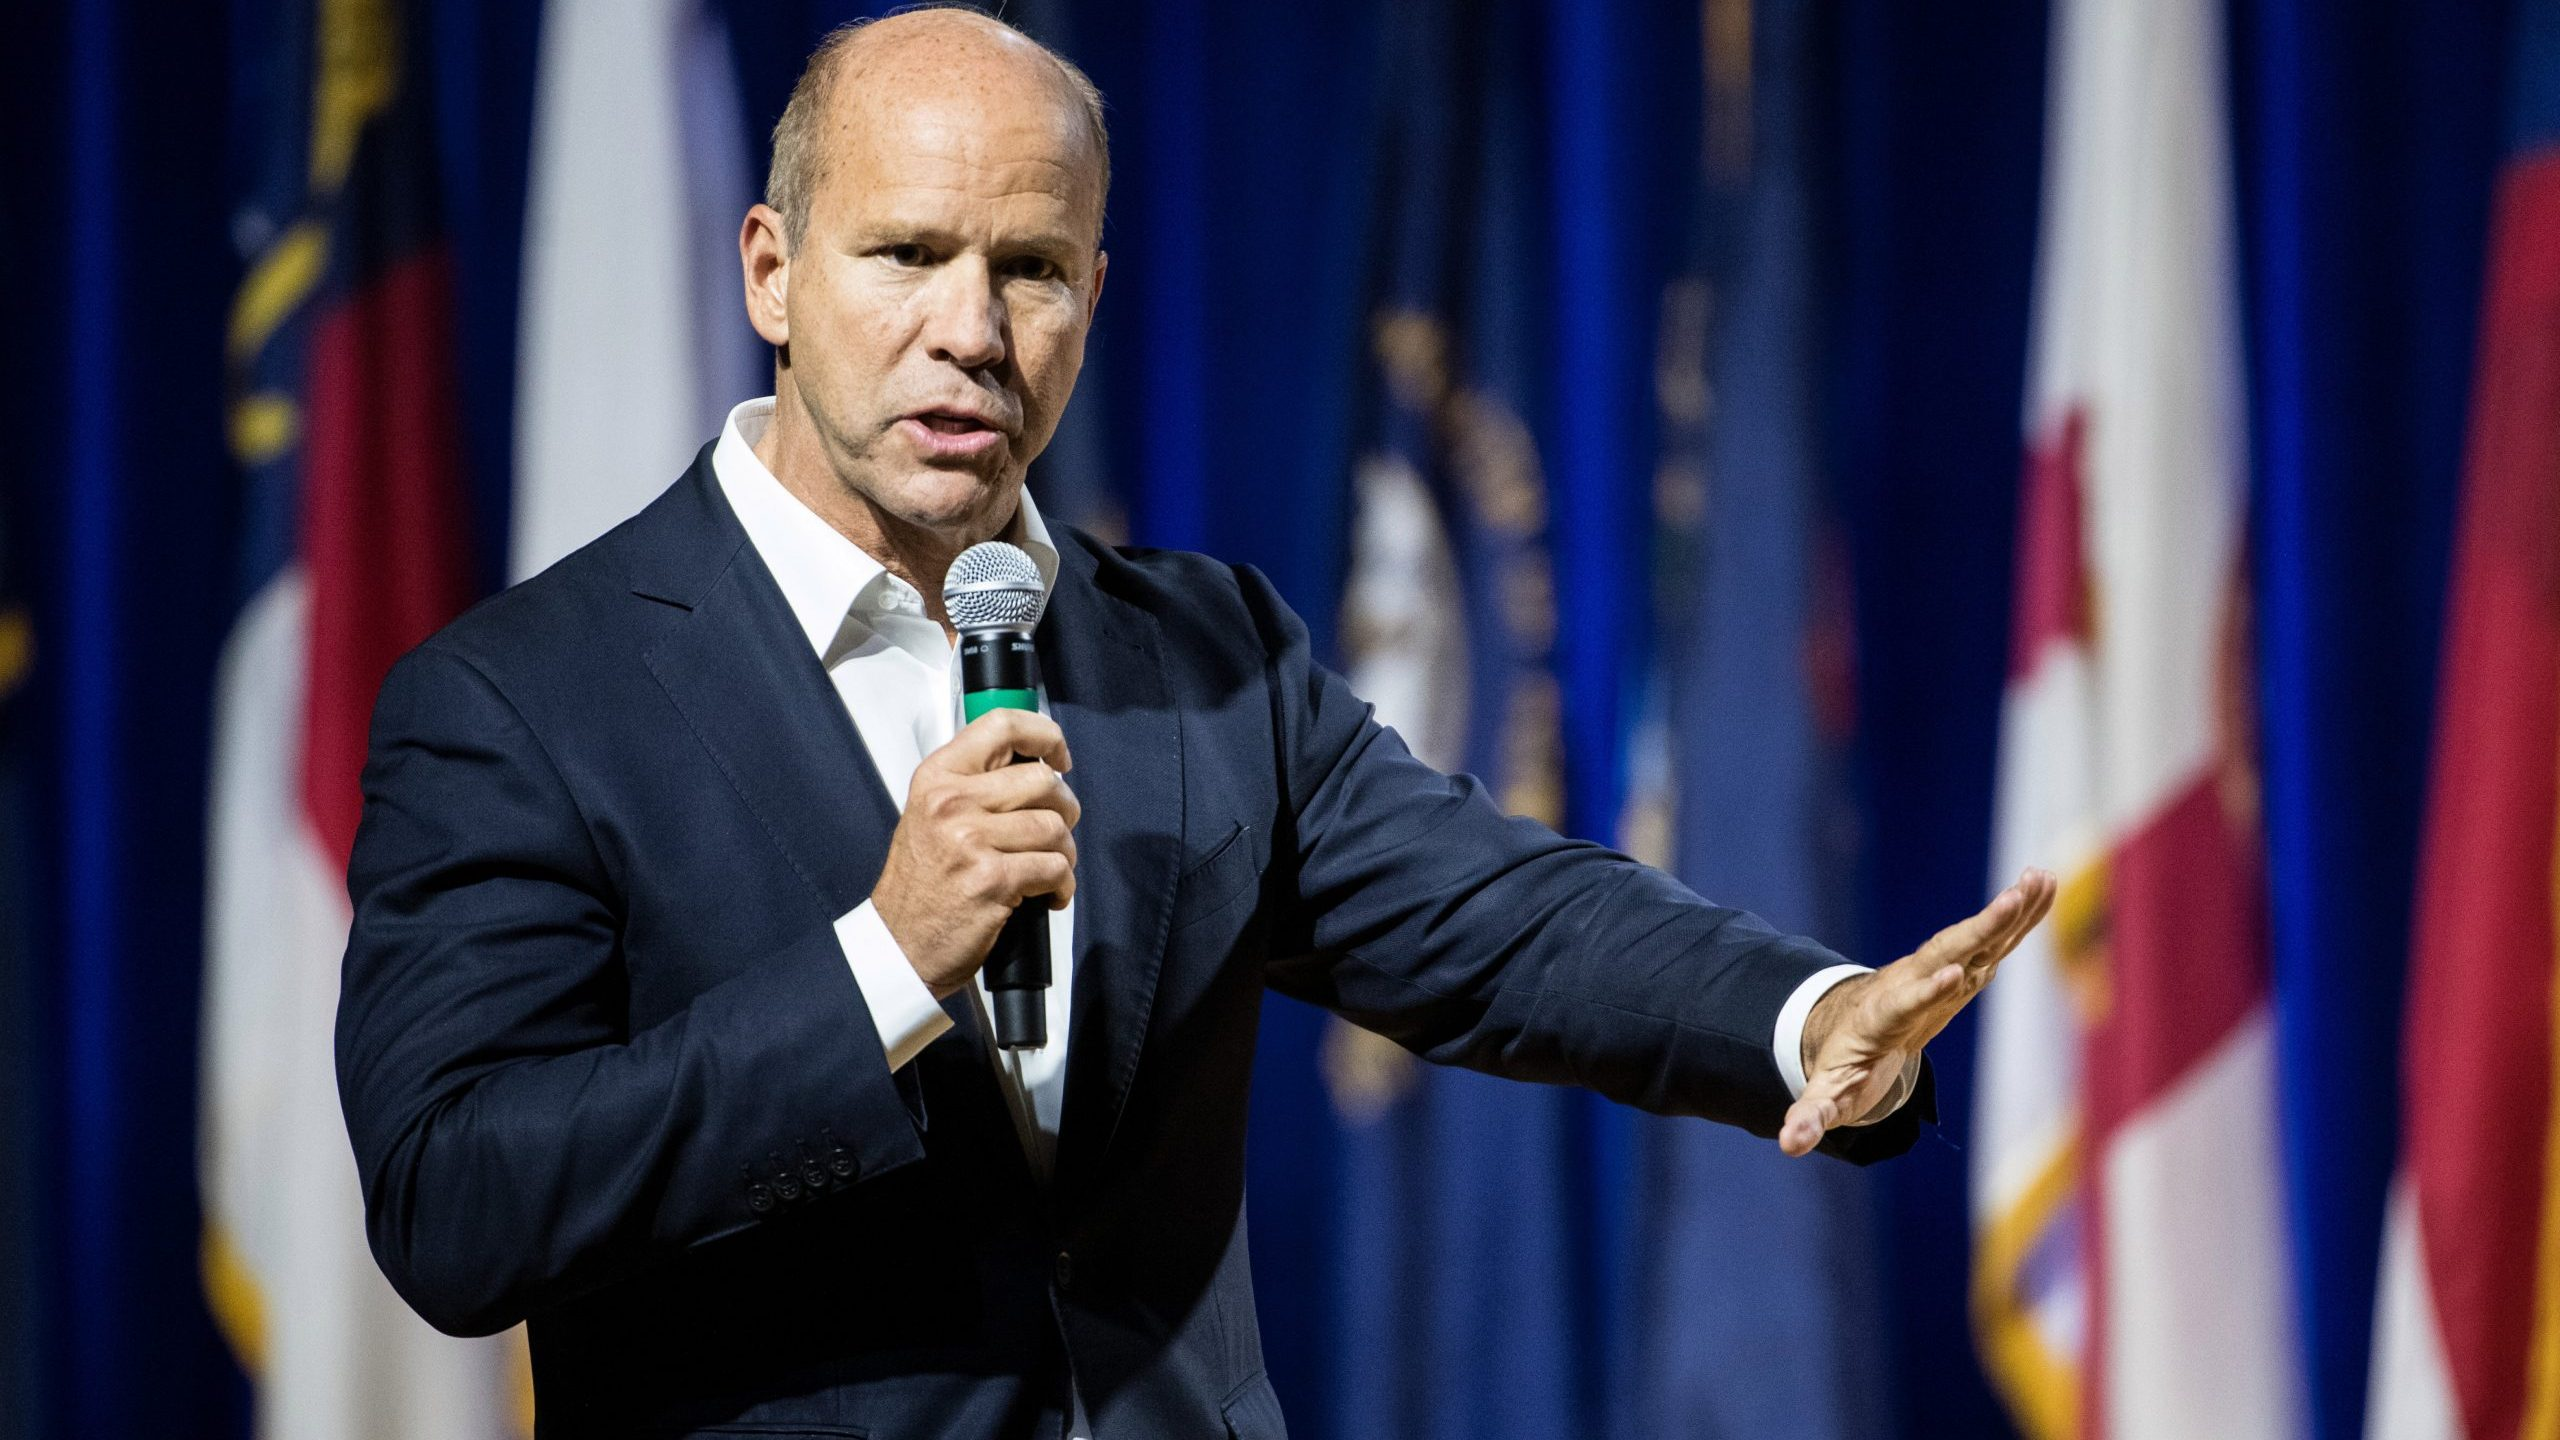 John Delaney addresses the audience at the Environmental Justice Presidential Candidate Forum at South Carolina State University on Nov. 8, 2019, in South Carolina. (Credit: Sean Rayford/Getty Images)